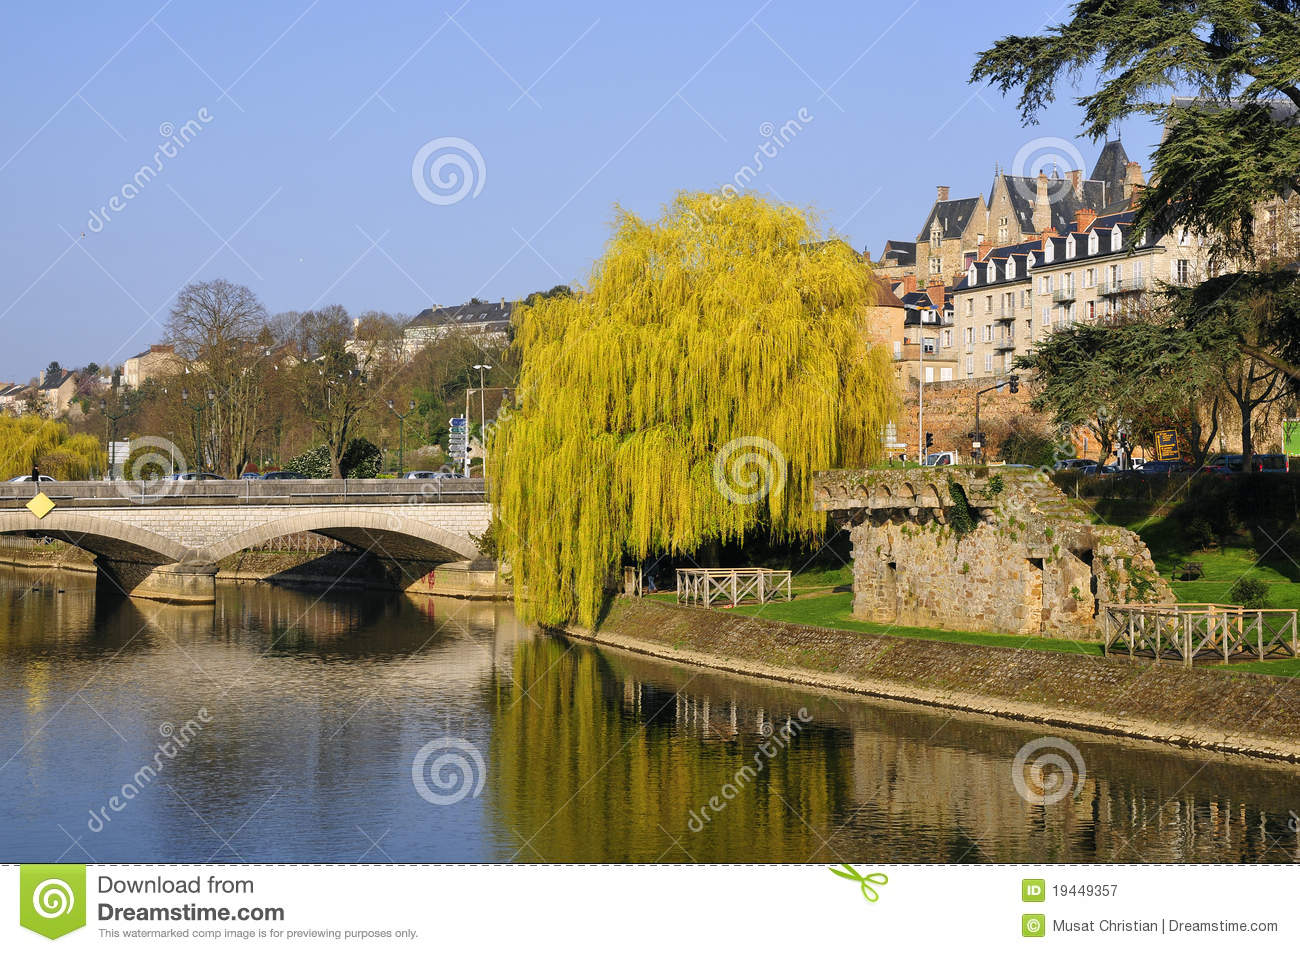 the river sarthe at le mans in france stock image image of tree manceau 19449357. Black Bedroom Furniture Sets. Home Design Ideas